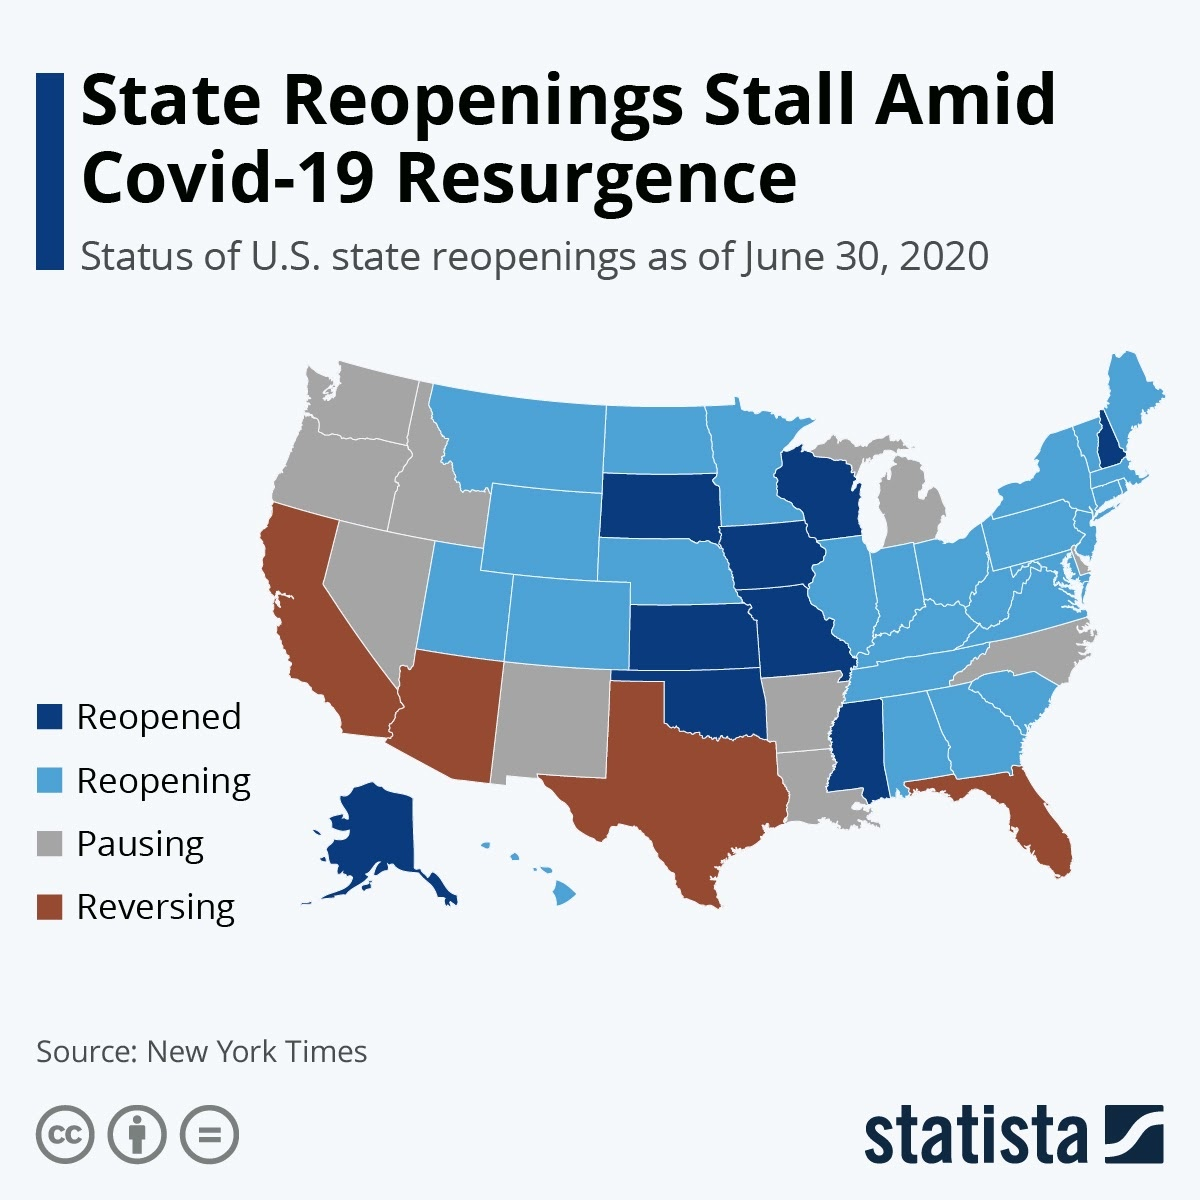 State Reopenings Stall Amid Covid-19 Resurgence #infographic